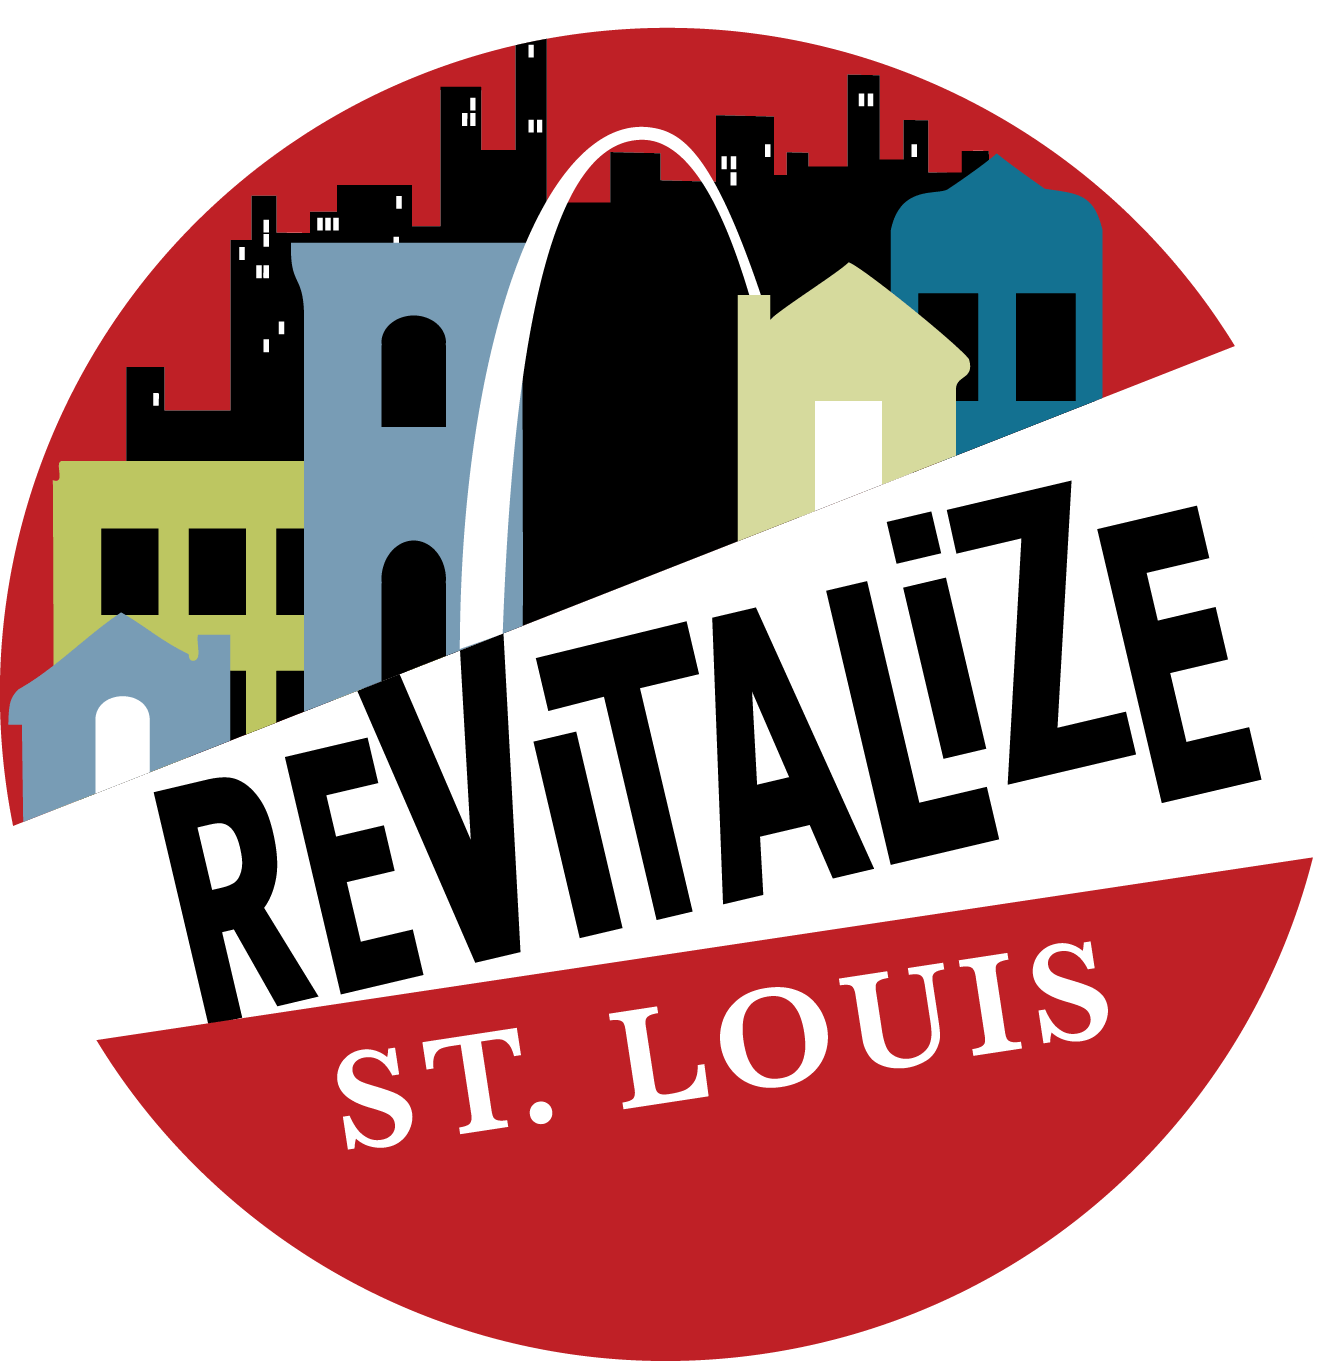 ReVitalize St. Louis